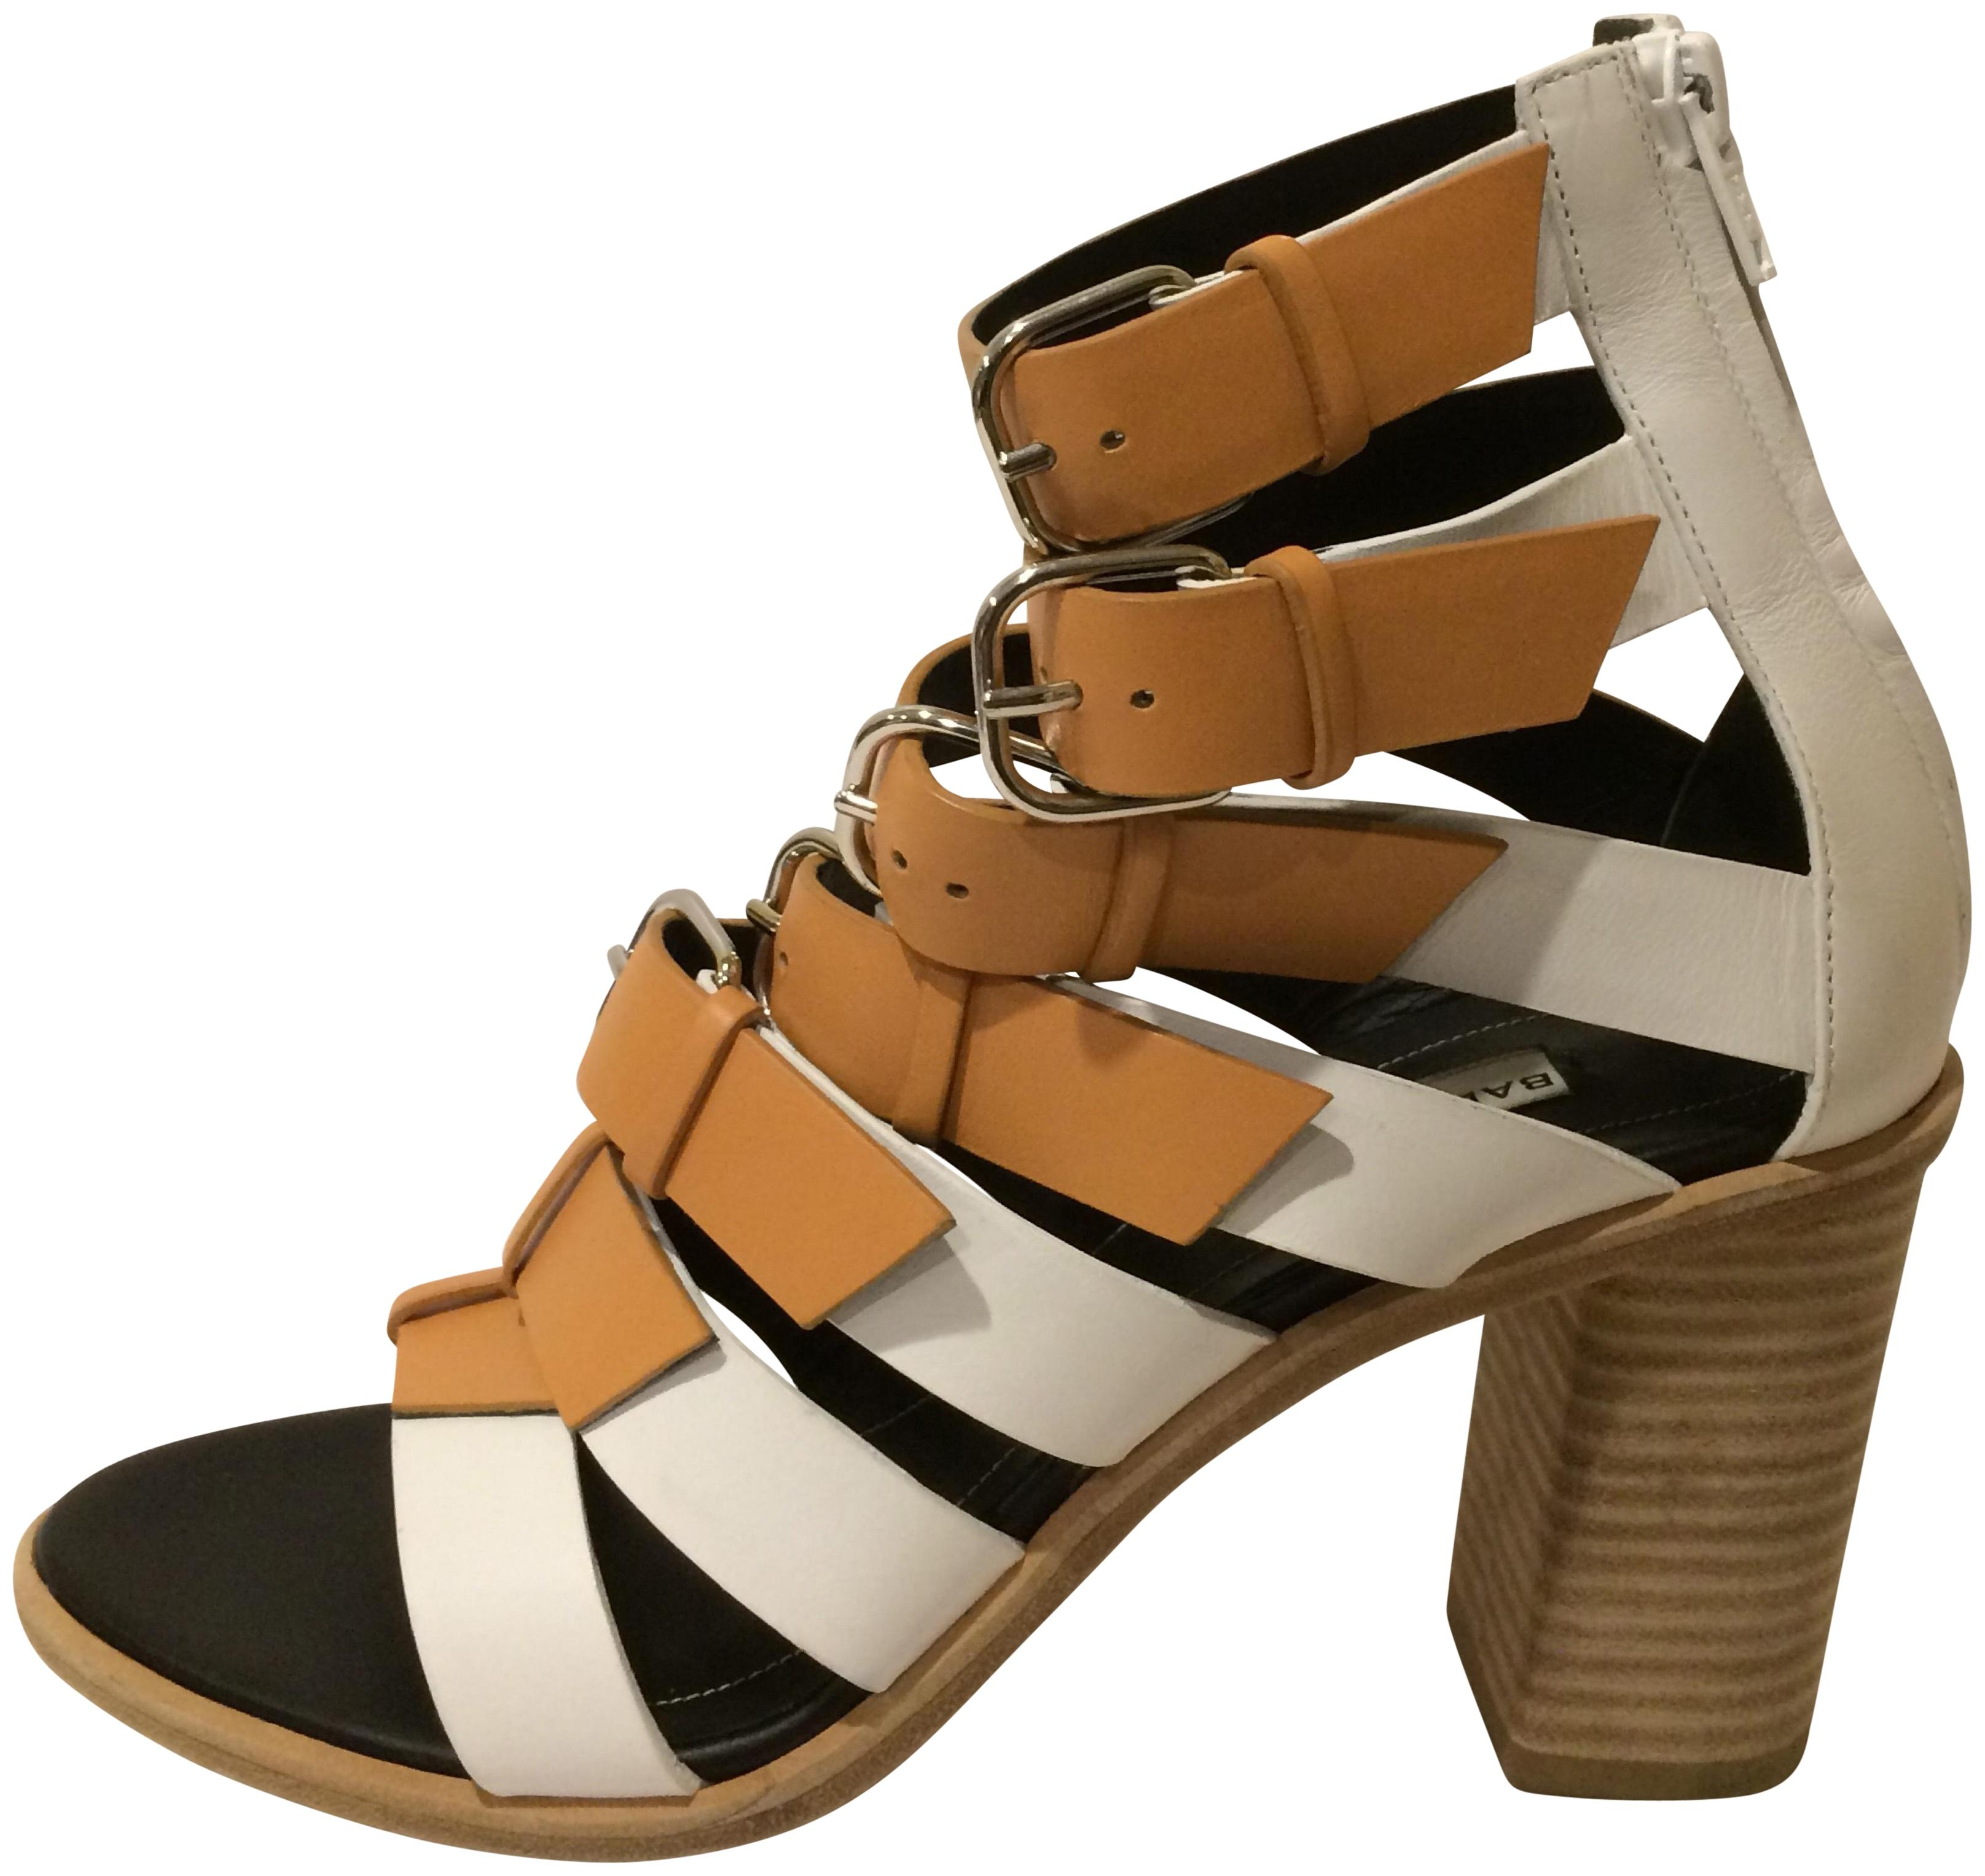 a10c4c2be Balenciaga New Buckled Ankle Strap Cage Leather Sandals Sandals Sandals Size  EU 36.5 (Approx. US 6.5) Regular (M